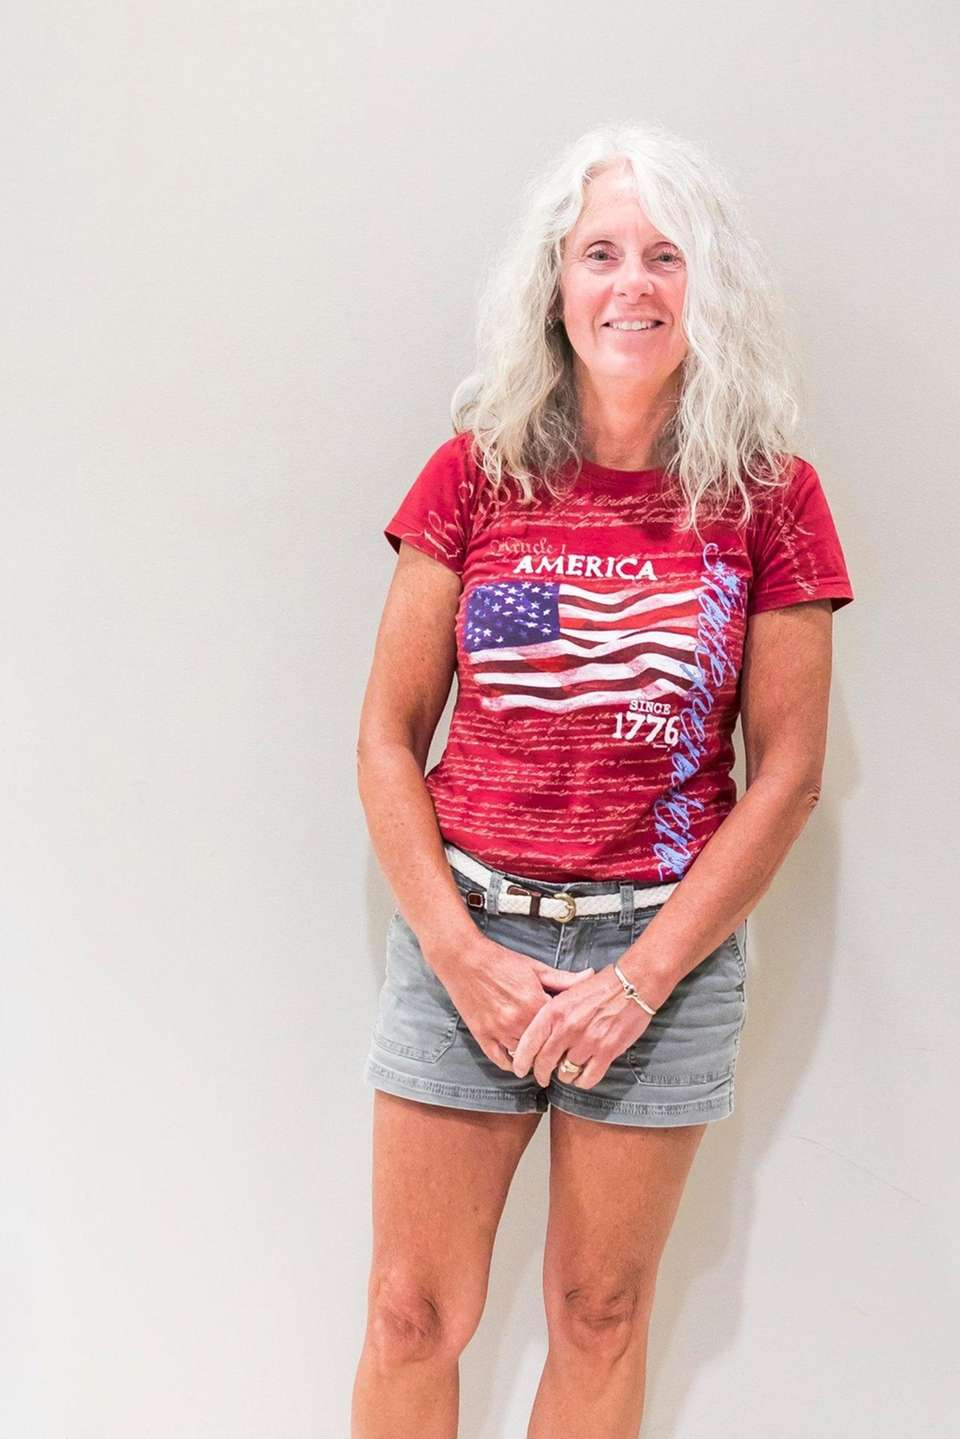 Teresa Rich,60 in October, of Southold, a Science